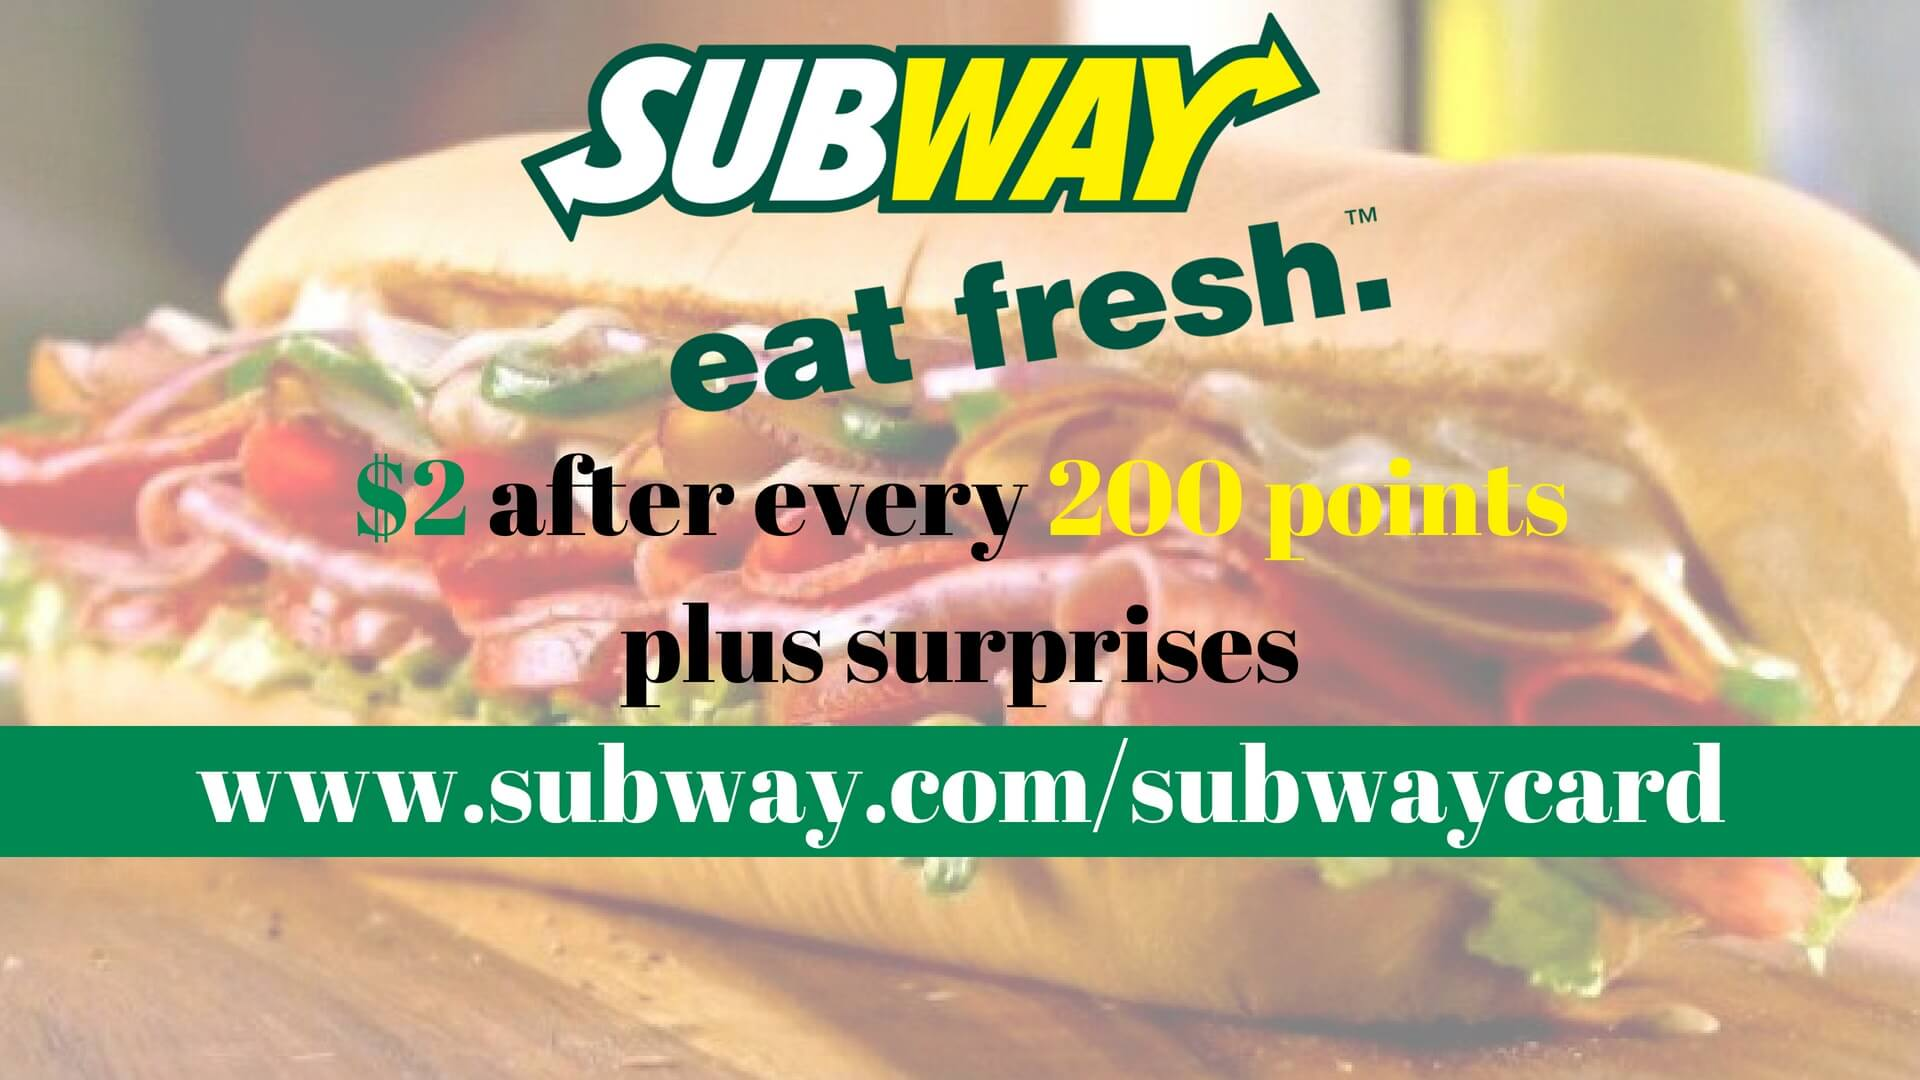 MySubwayCard | Sign up to Get $2 Discounts and Surprise Prizes